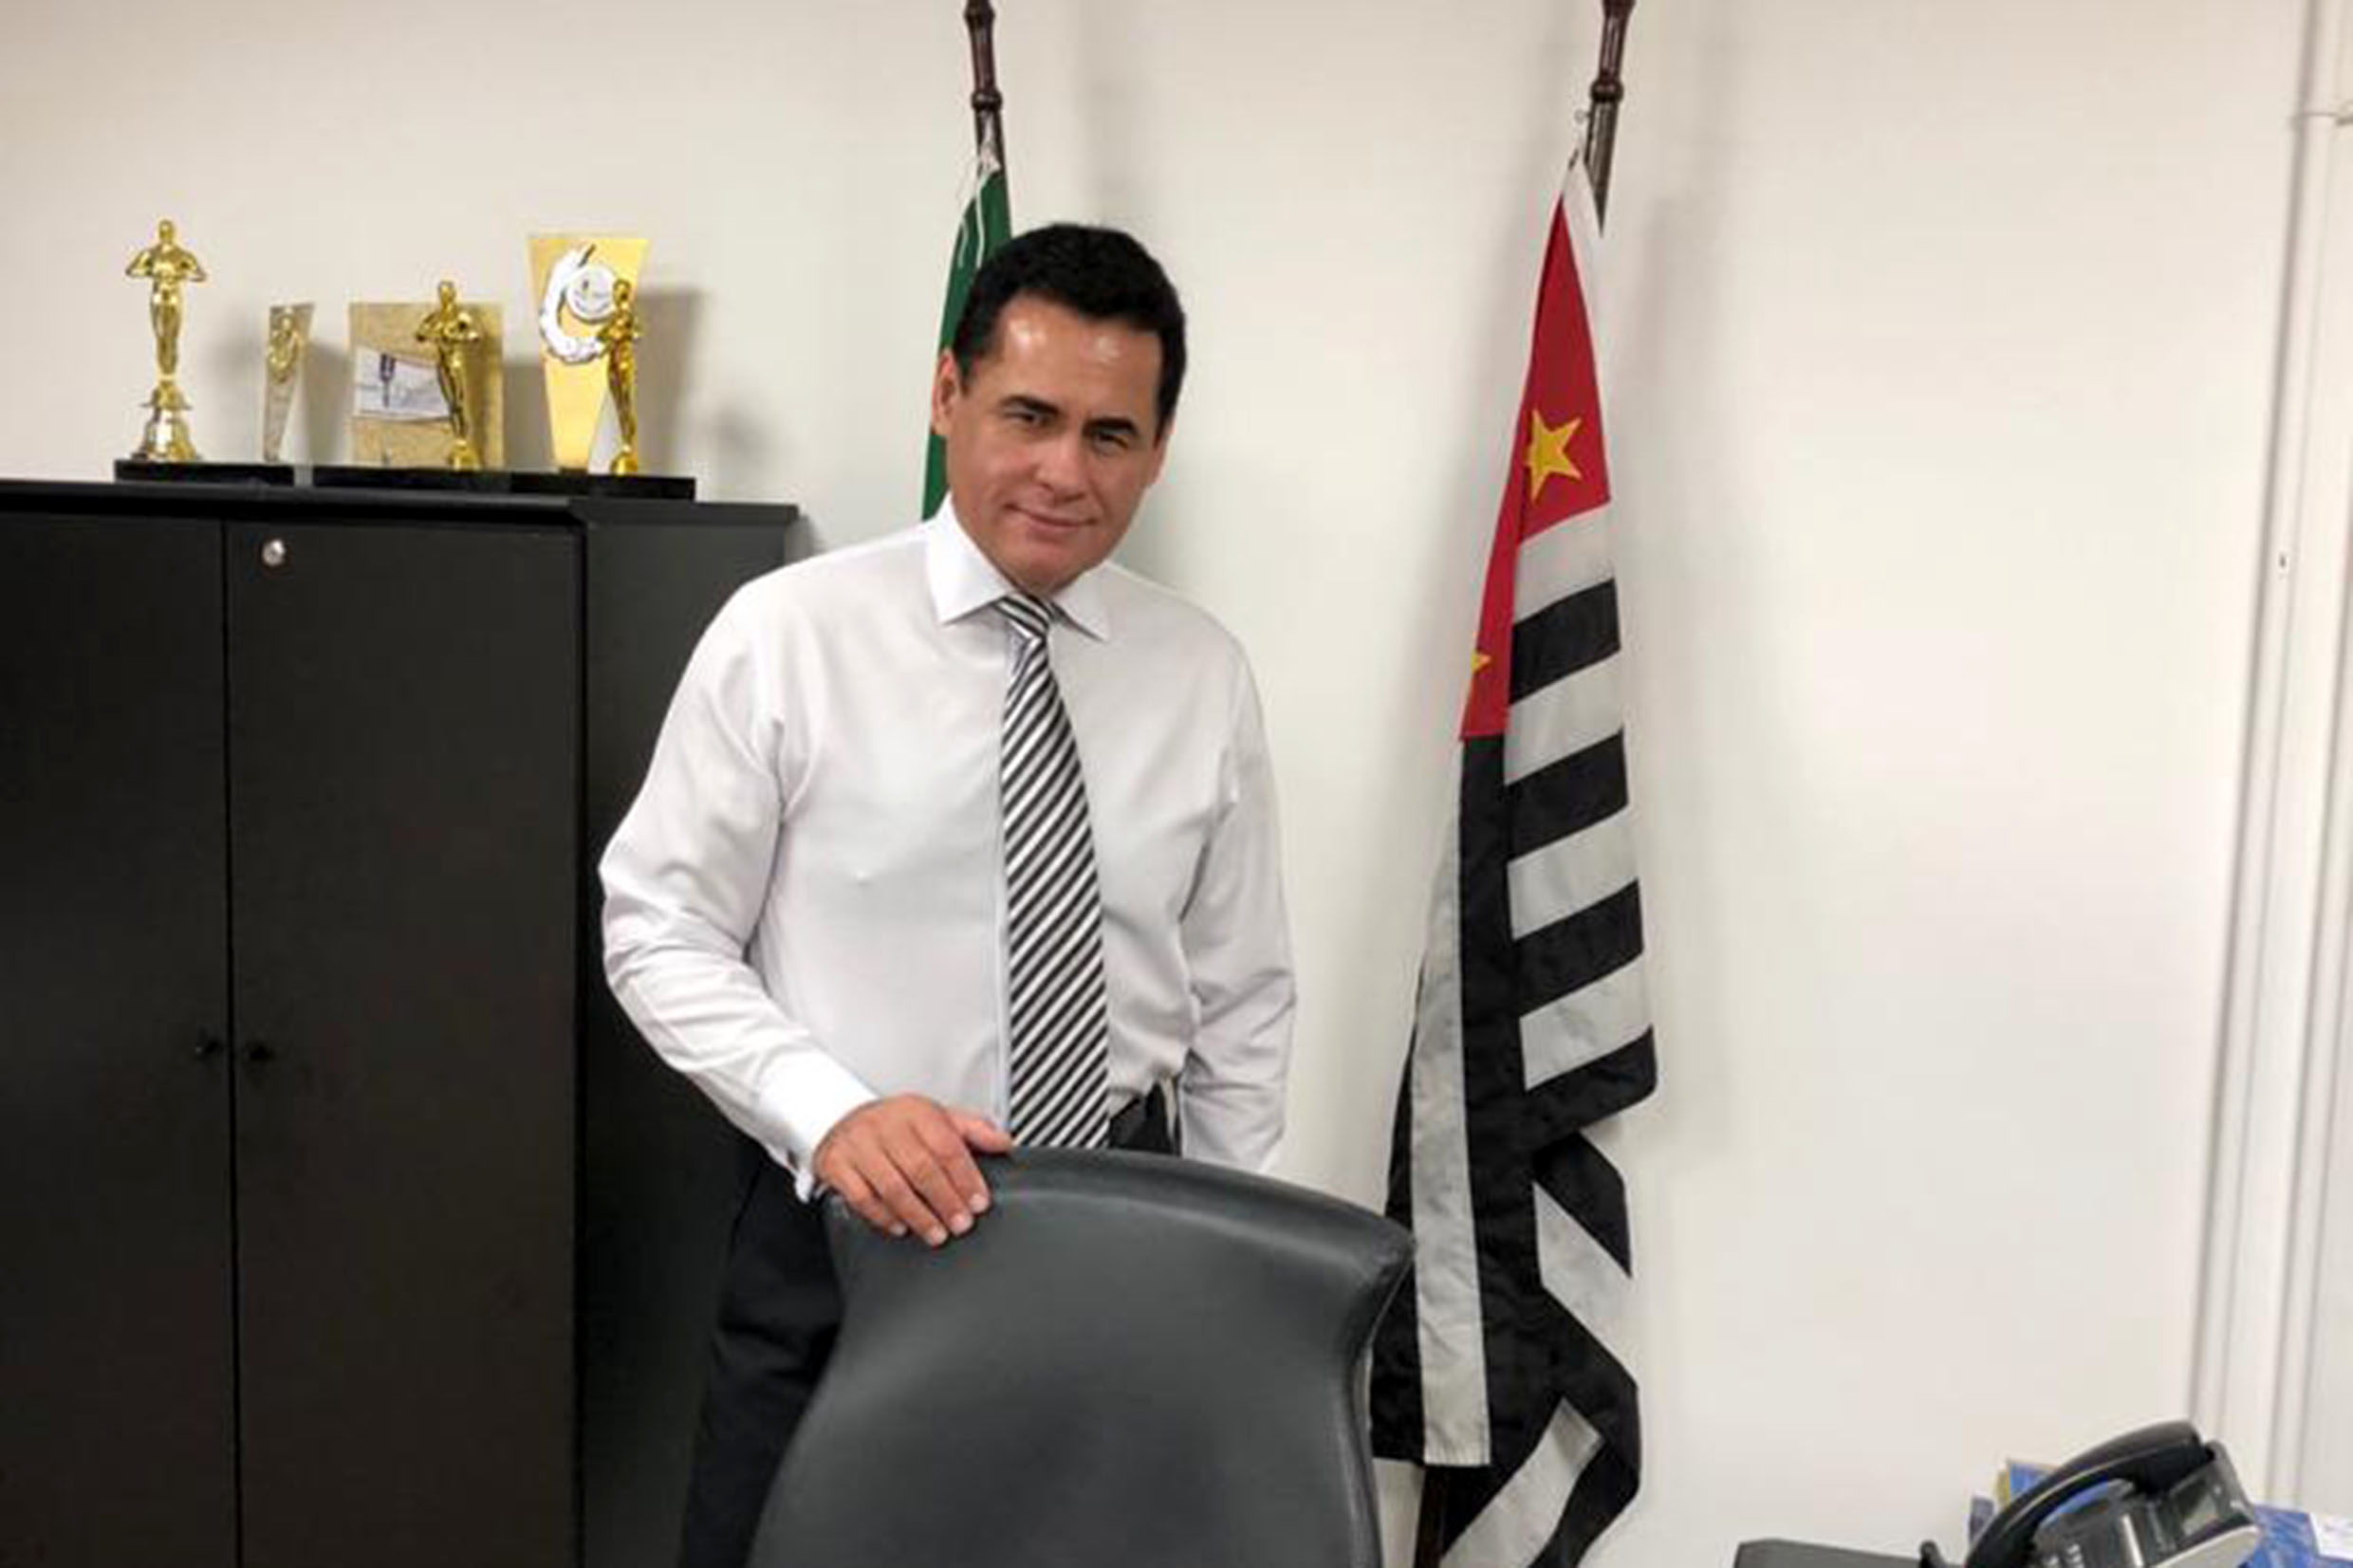 Jorge Wilson Xerife do Consumidor<a style='float:right' href='https://www3.al.sp.gov.br/repositorio/noticia/N-05-2020/fg249127.jpg' target=_blank><img src='/_img/material-file-download-white.png' width='14px' alt='Clique para baixar a imagem'></a>